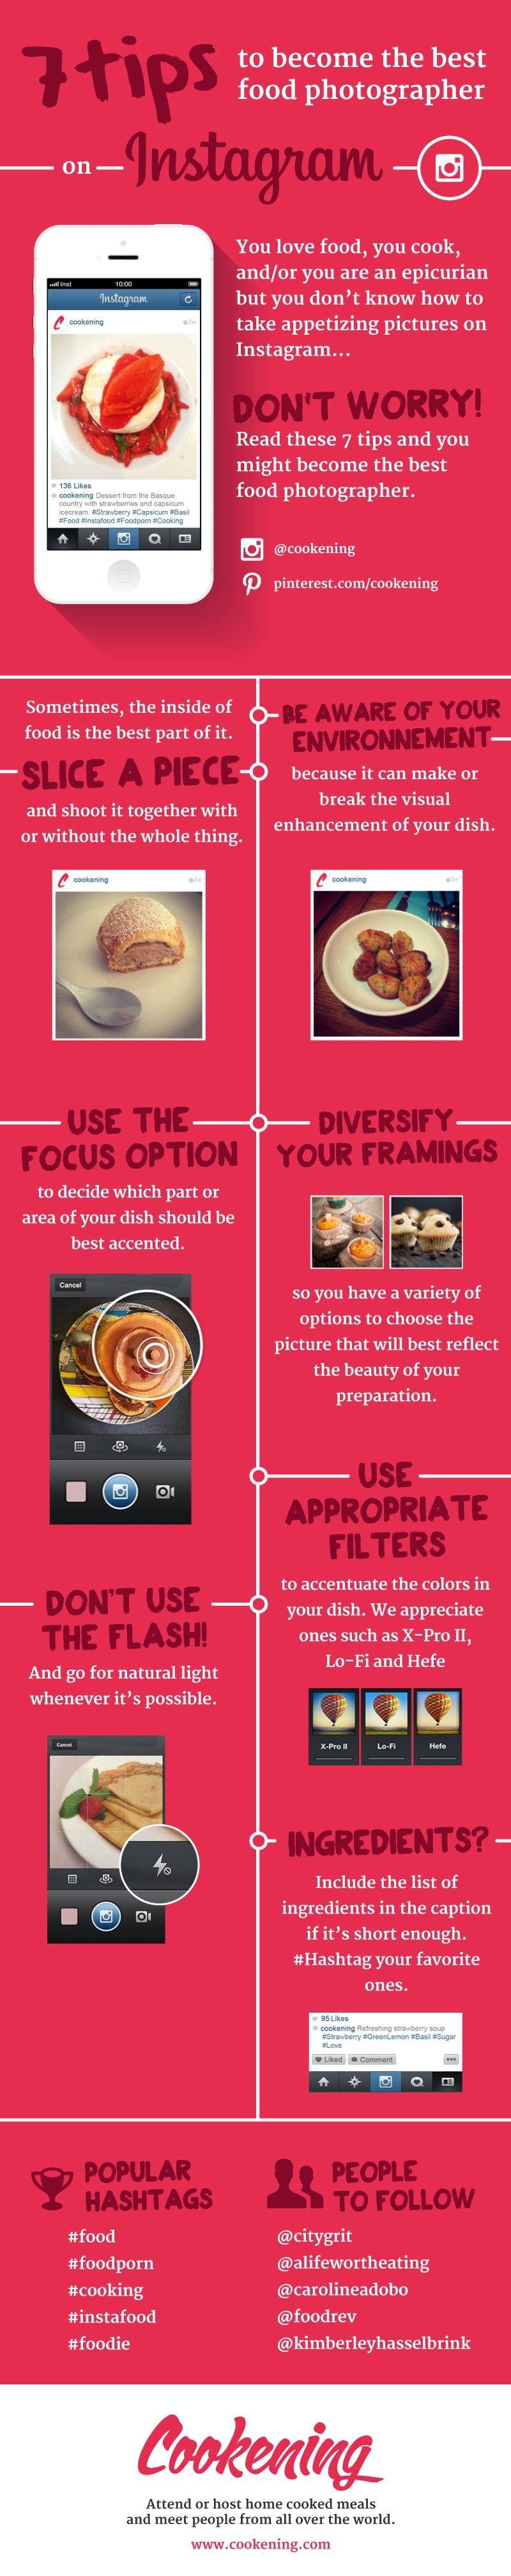 Instagram Photo Tips